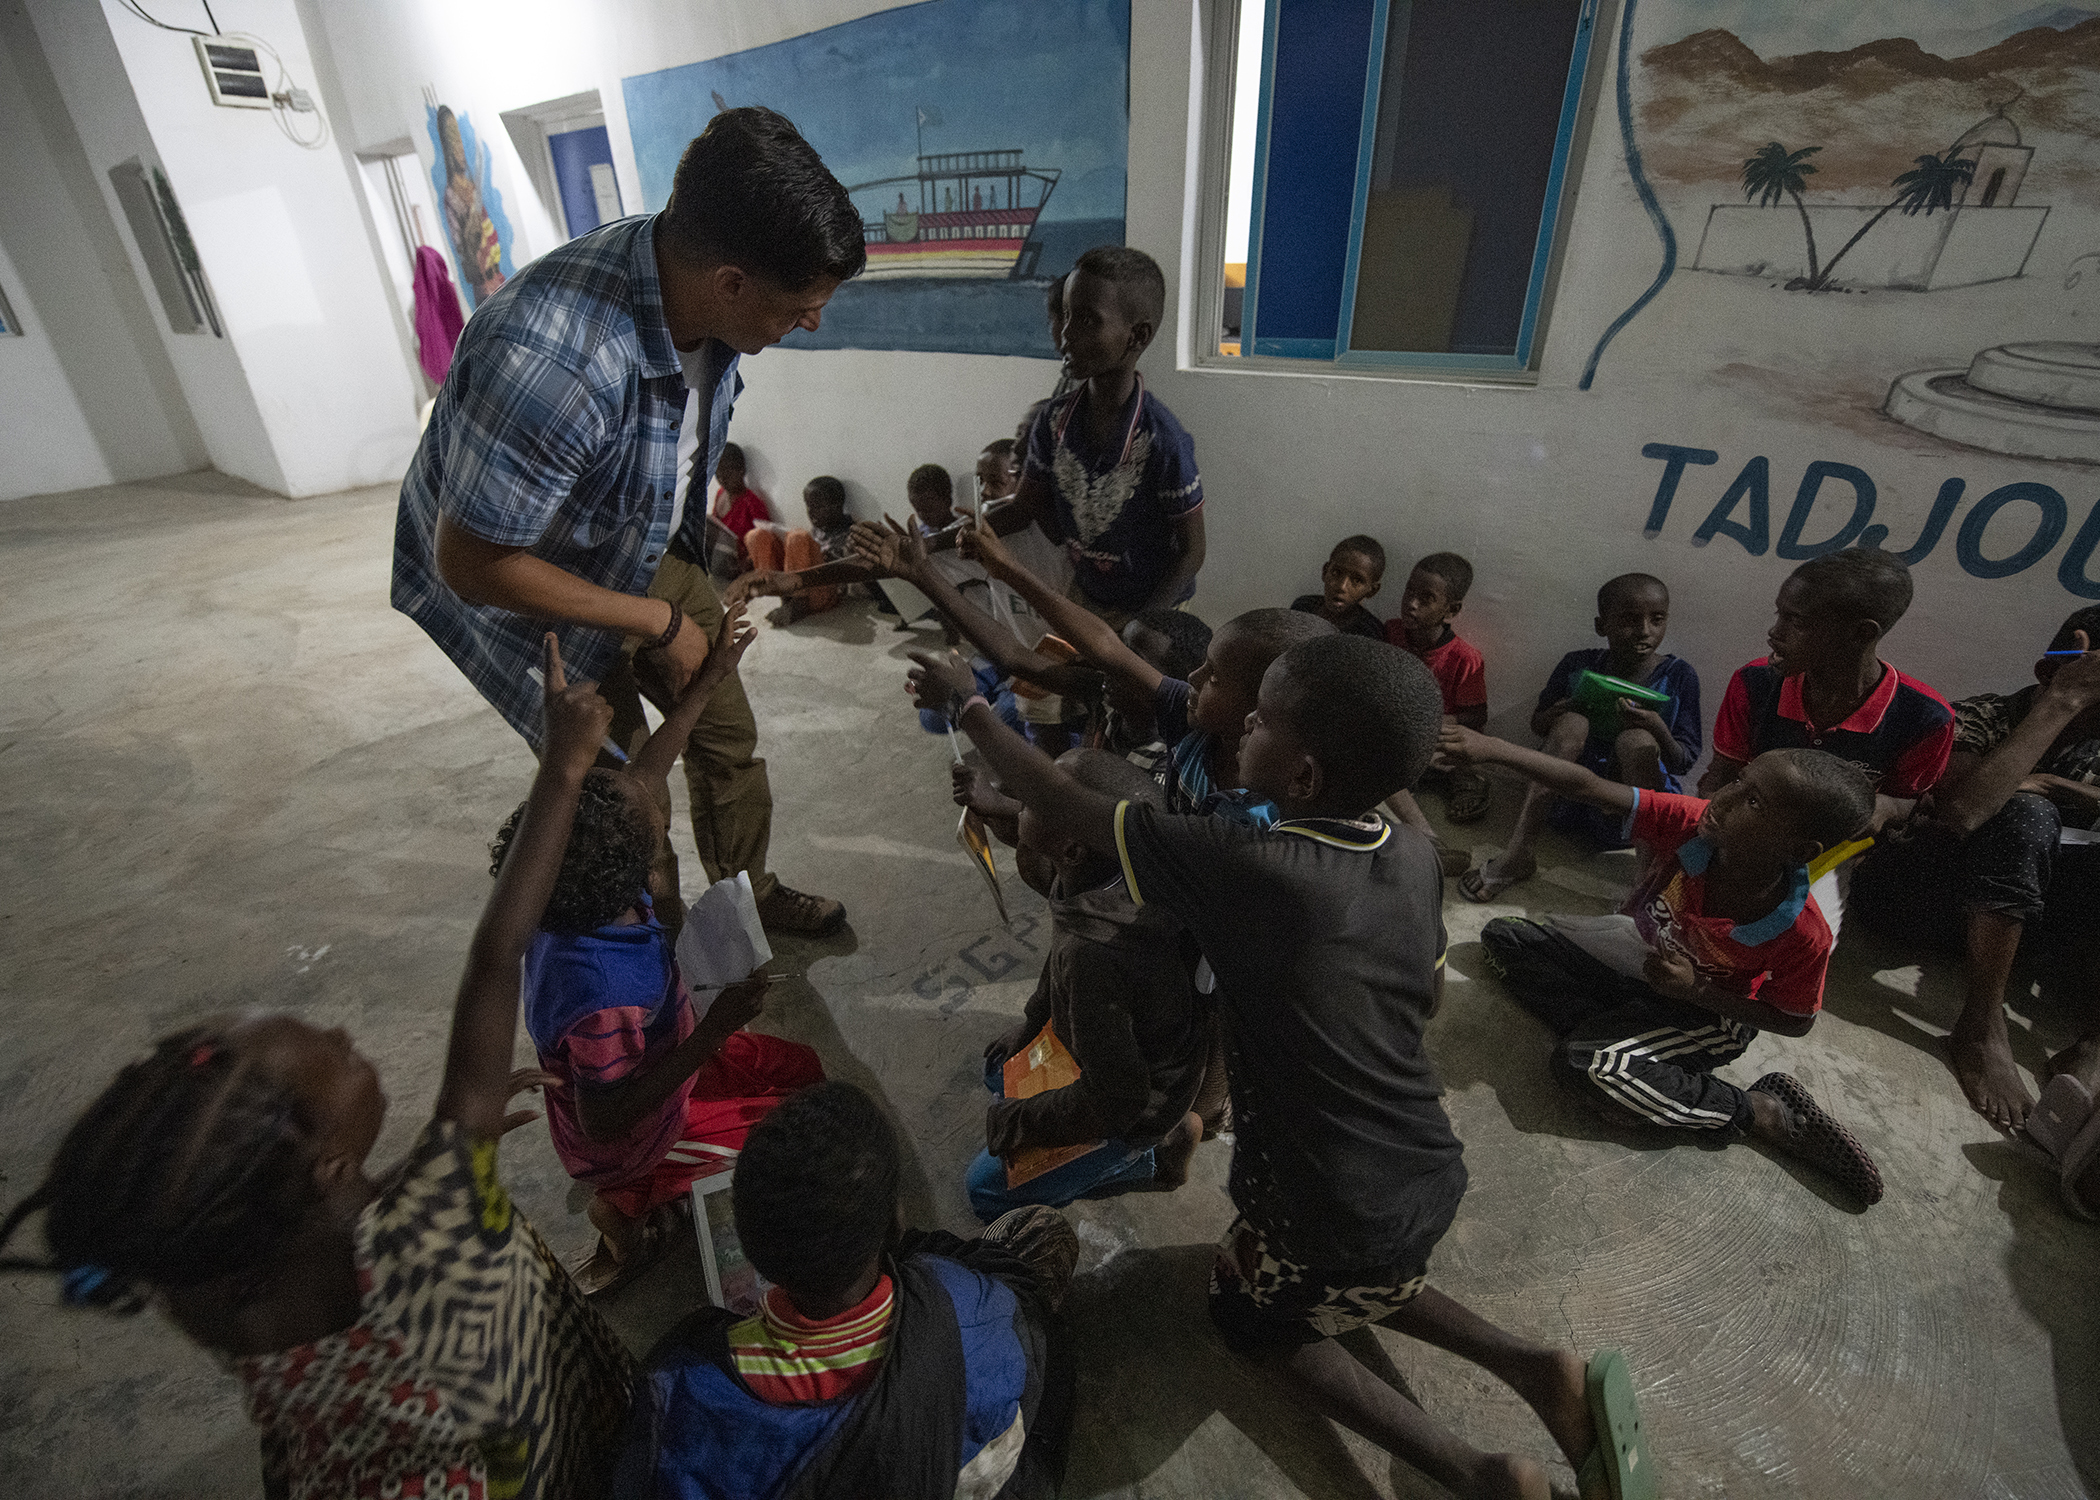 U.S. Army Staff Sgt. Brian Zimmerman, an operations NCO from the 403rd Civil Affairs Battalion, assigned to Combined Joint Task Force-Horn of Africa, works with children during an English Discussion Group in Tadjourah, Djibouti, Feb. 12, 2019. More than 90 Djiboutian youth and adults attended the group where students develop practical linguistic and rhetorical skills through conversation with English-speaking U.S. service members. (U.S. Air Force photo by Tech. Sgt. Shawn Nickel)